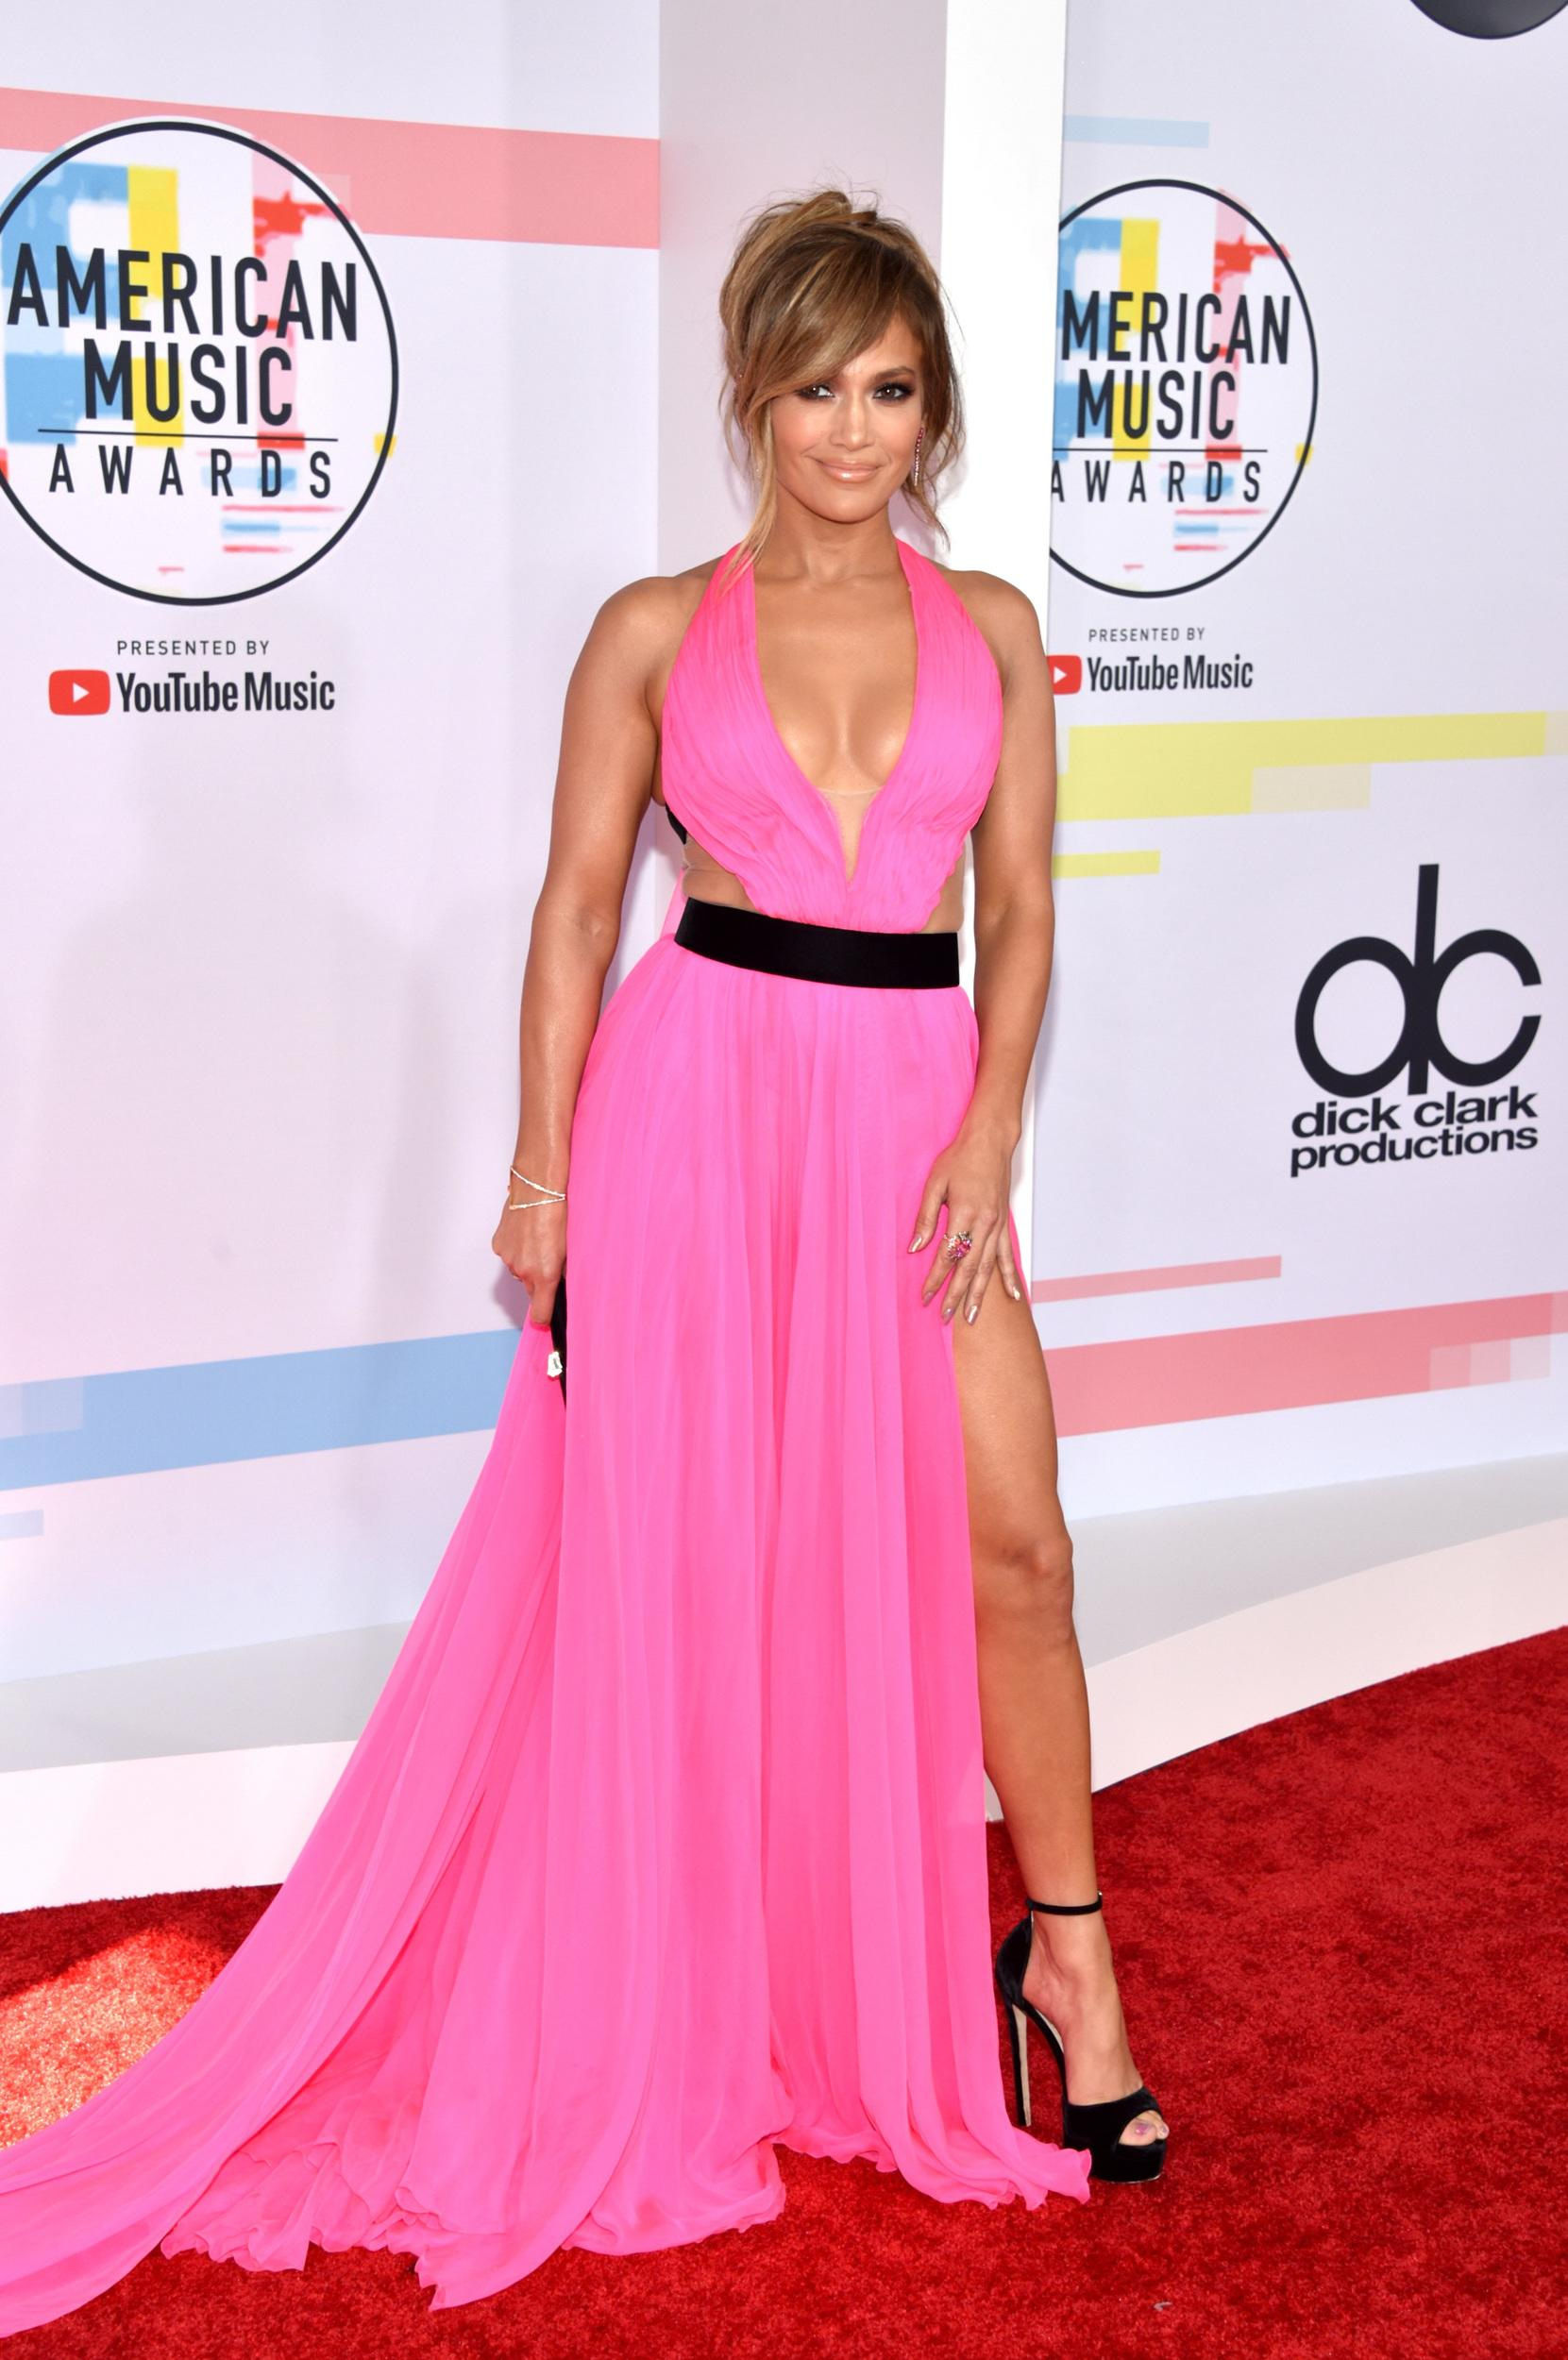 LOS ANGELES, CA - OCTOBER 09:  Jennifer Lopez attends the 2018 American Music Awards at Microsoft Theater on October 9, 2018 in Los Angeles, California.  (Photo by John Shearer/Getty Images For dcp)